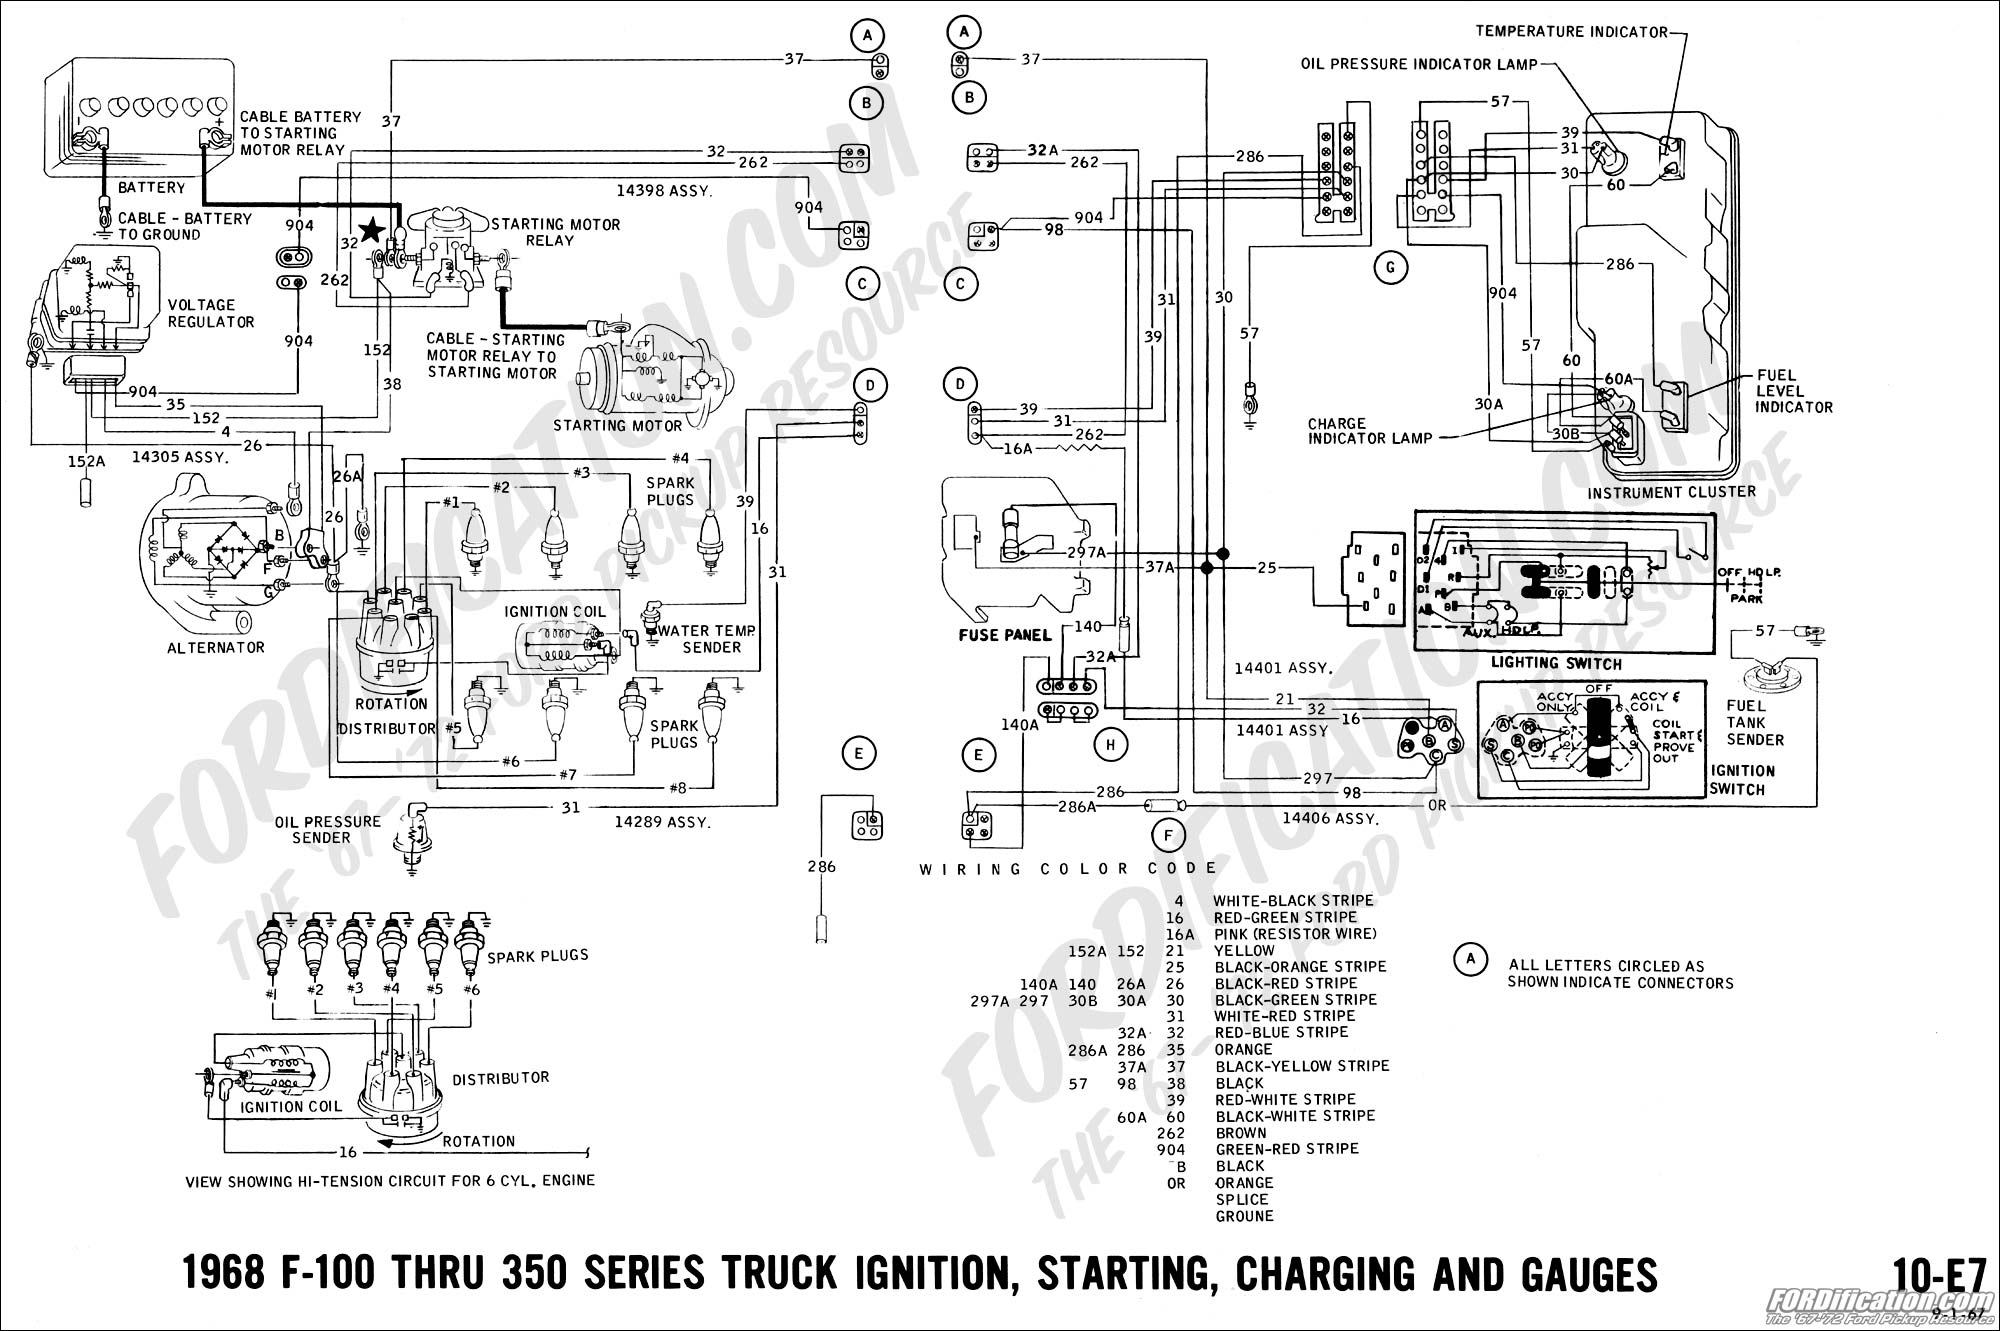 1968 F100 Wiring Diagram Another Blog About F250 Diagrams Ford Truck Technical Drawings And Schematics Section H Rh Fordification Com